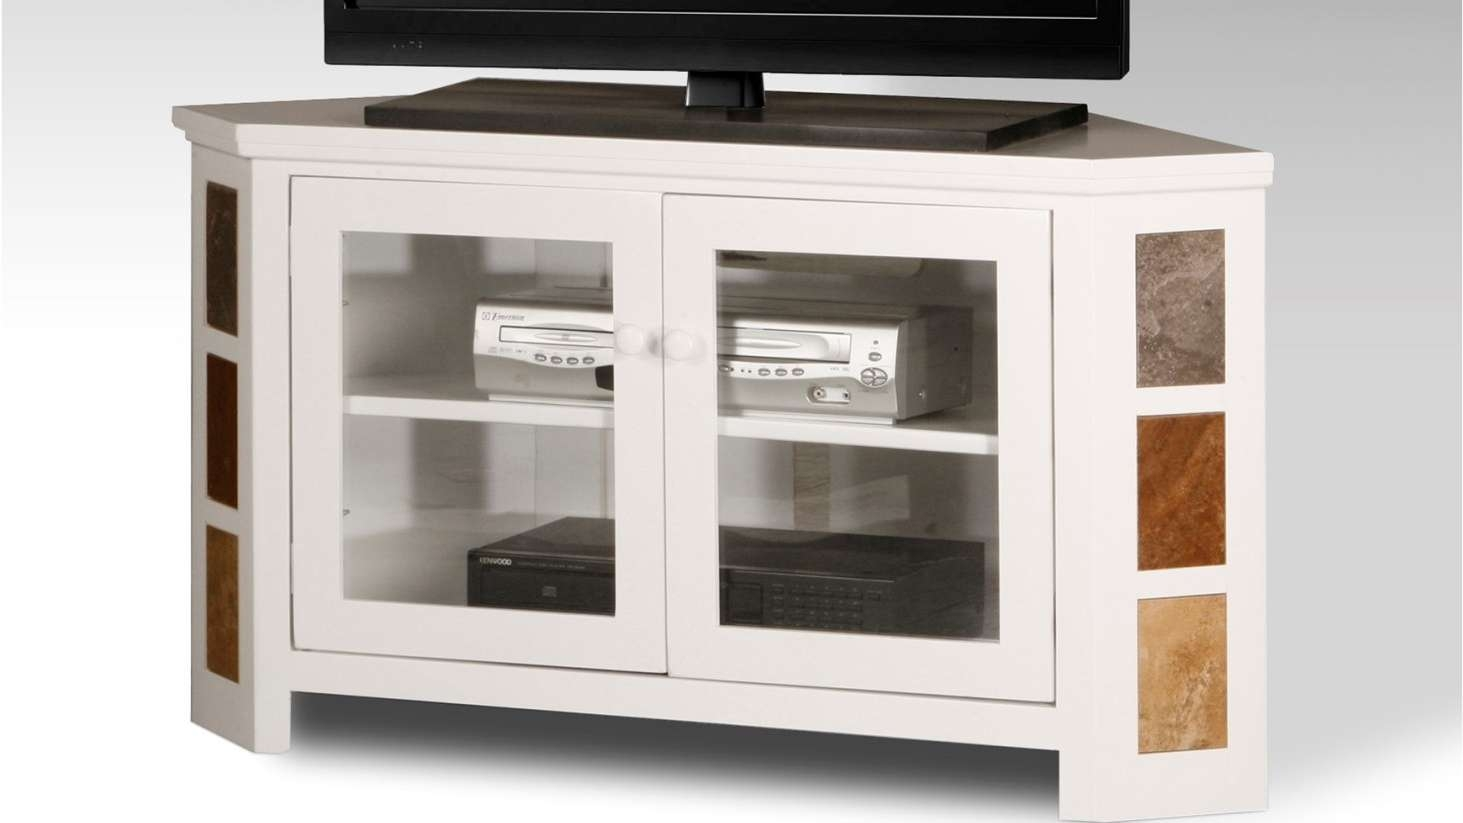 Tv : Amazing Oval White Tv Stands Techlink Ovid White Gloss Oval Pertaining To Ovid White Tv Stands (View 12 of 15)